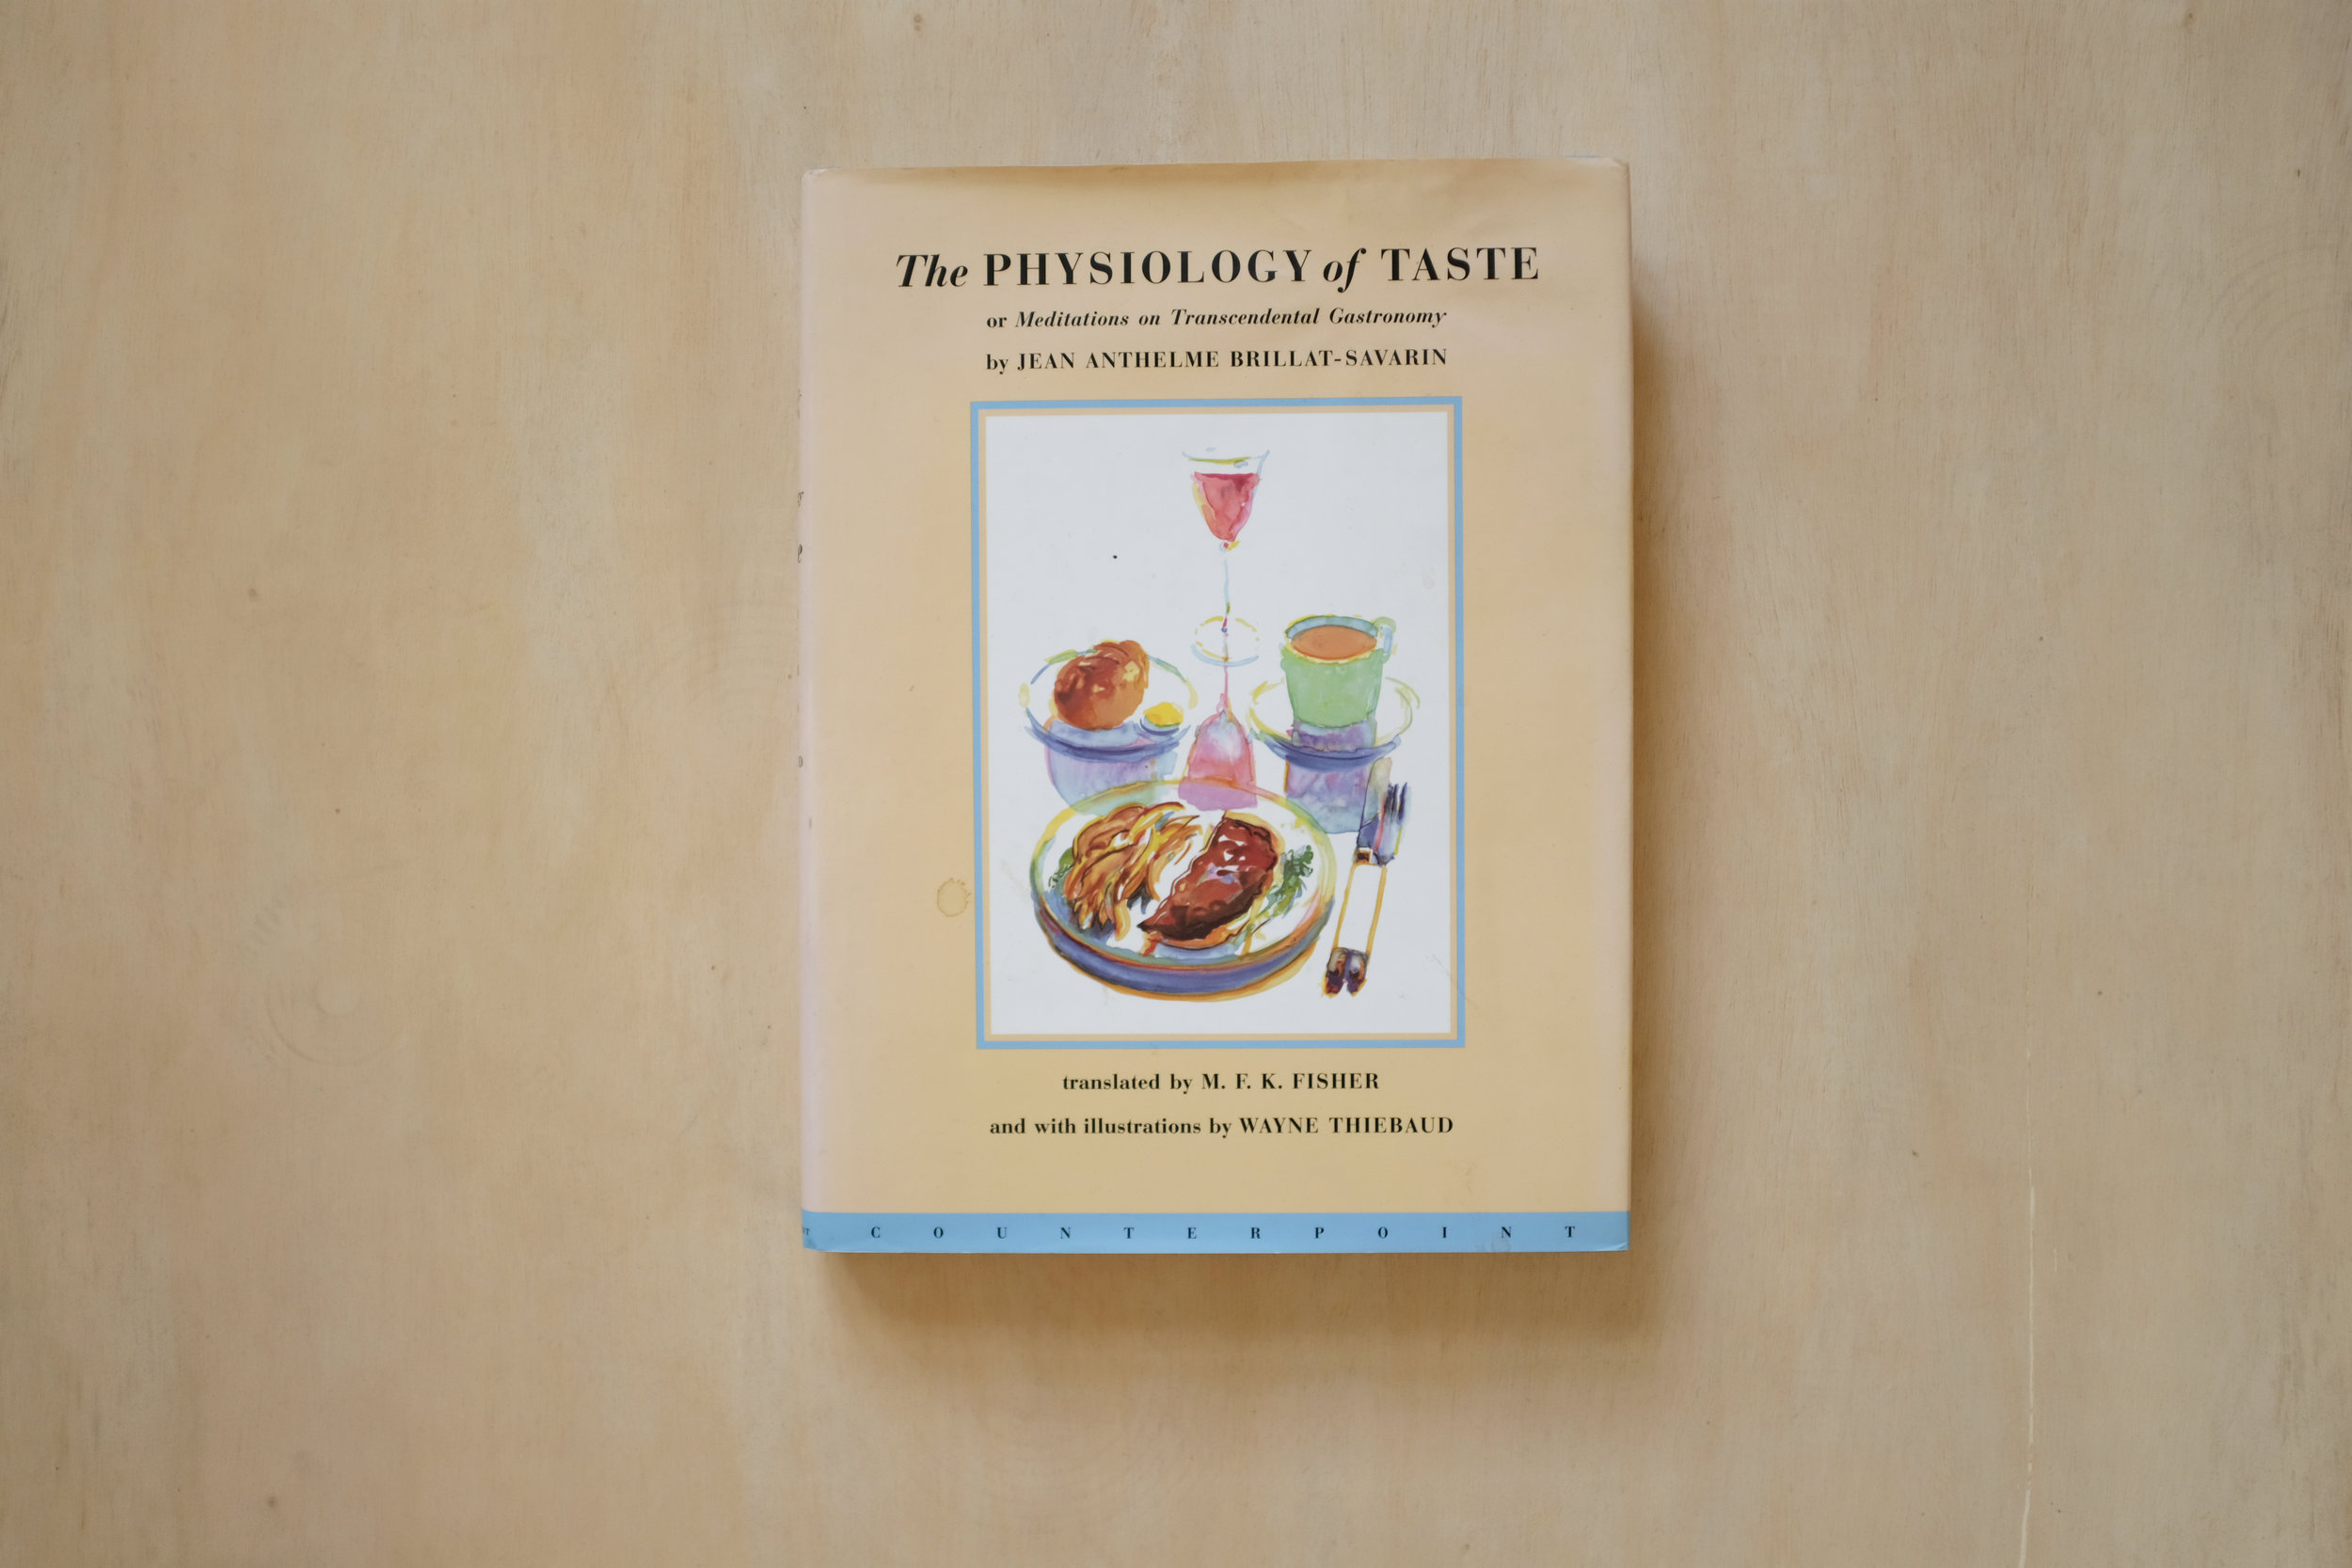 In  Meditation II on Taste  by Brillat Savarin attempts a cohesive theory of the operations and sensations of taste. His book The Physiology of Taste was translated by MFK Fisher, and keep in mind it was written in 1825,